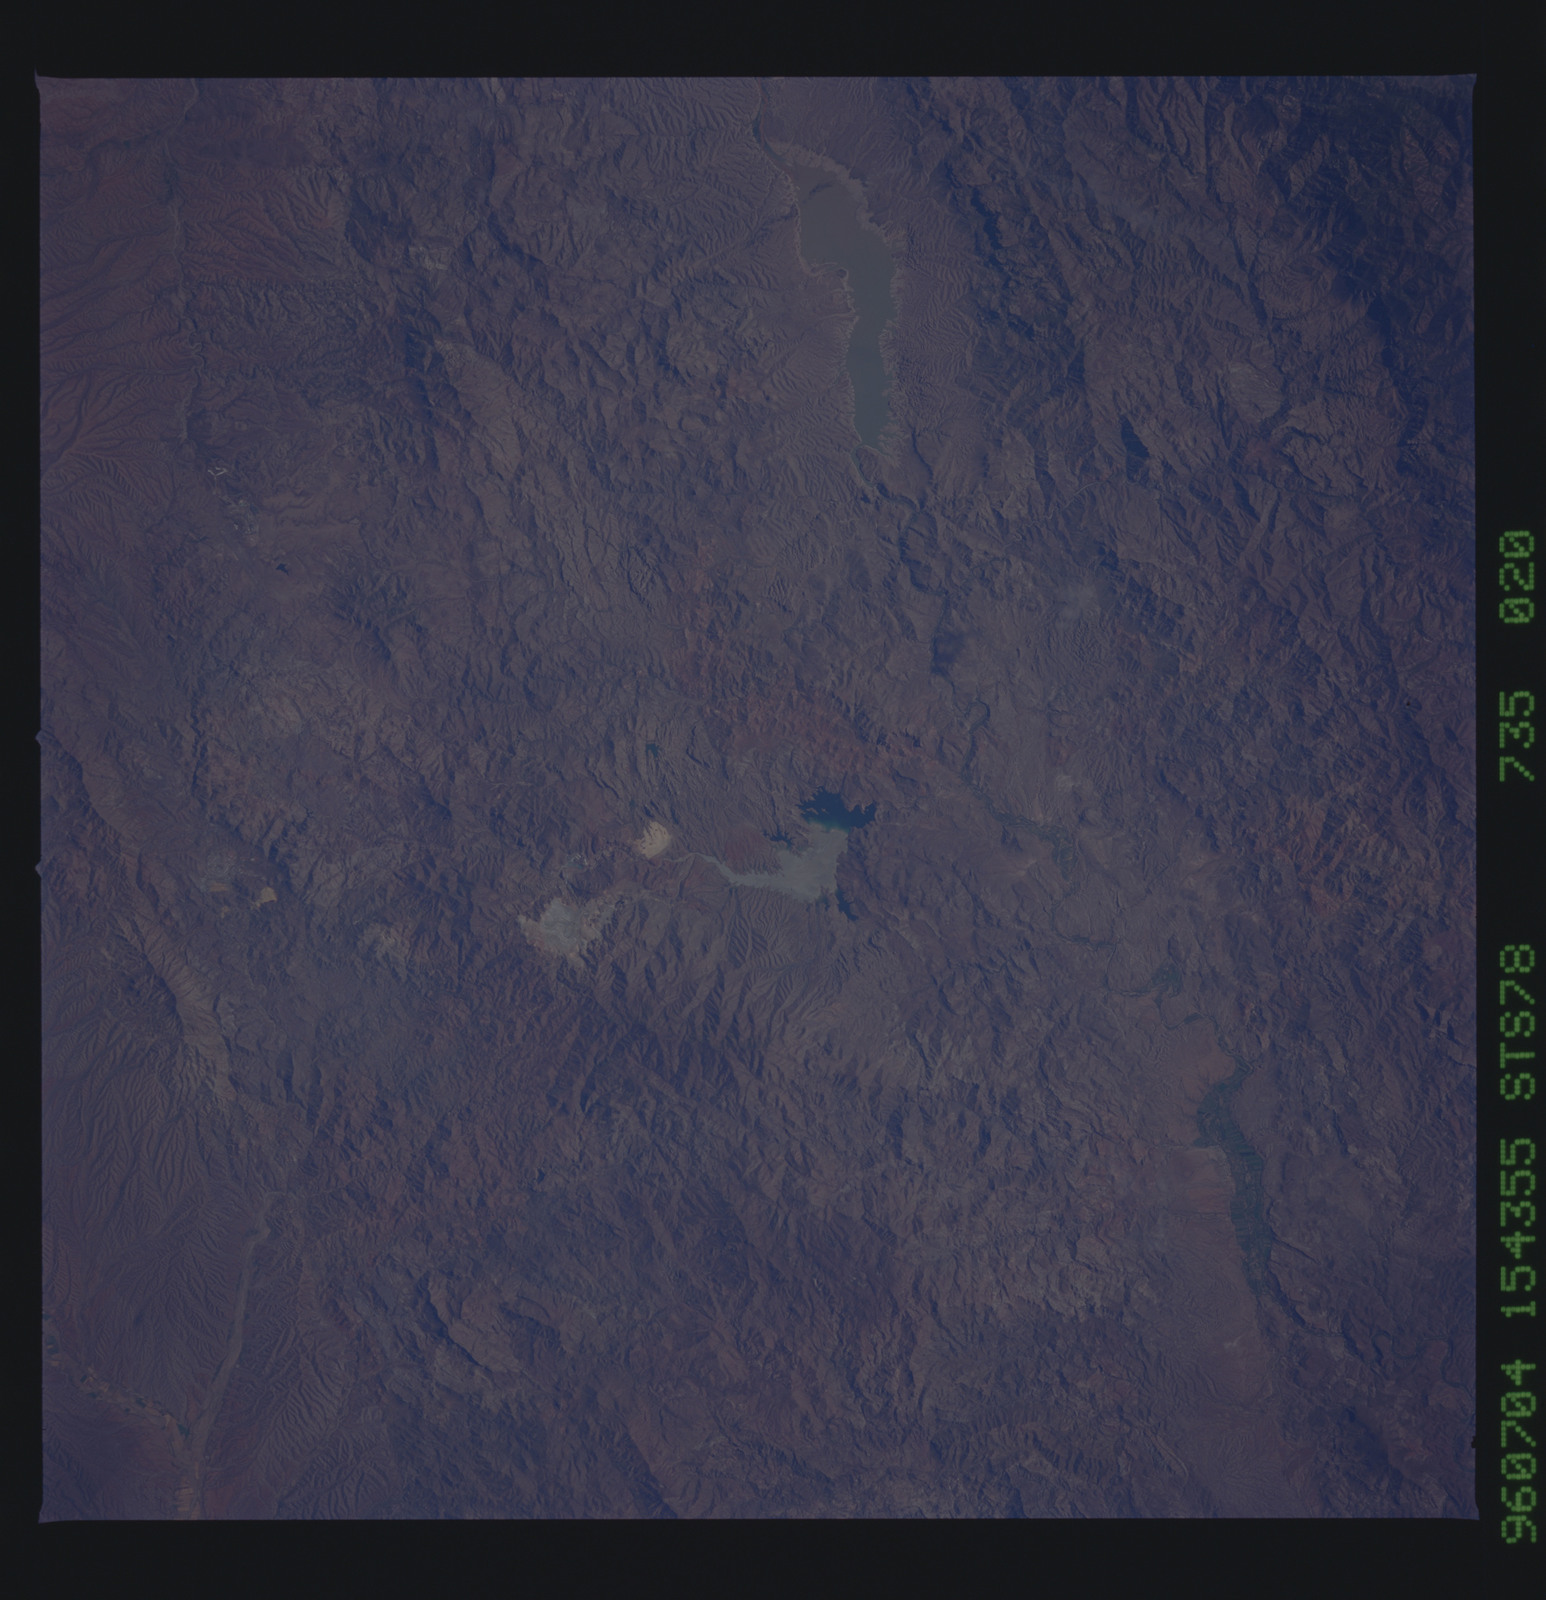 STS078-735-020 - STS-078 - Earth observations taken from Space Shuttle Columbia during STS-78 mission